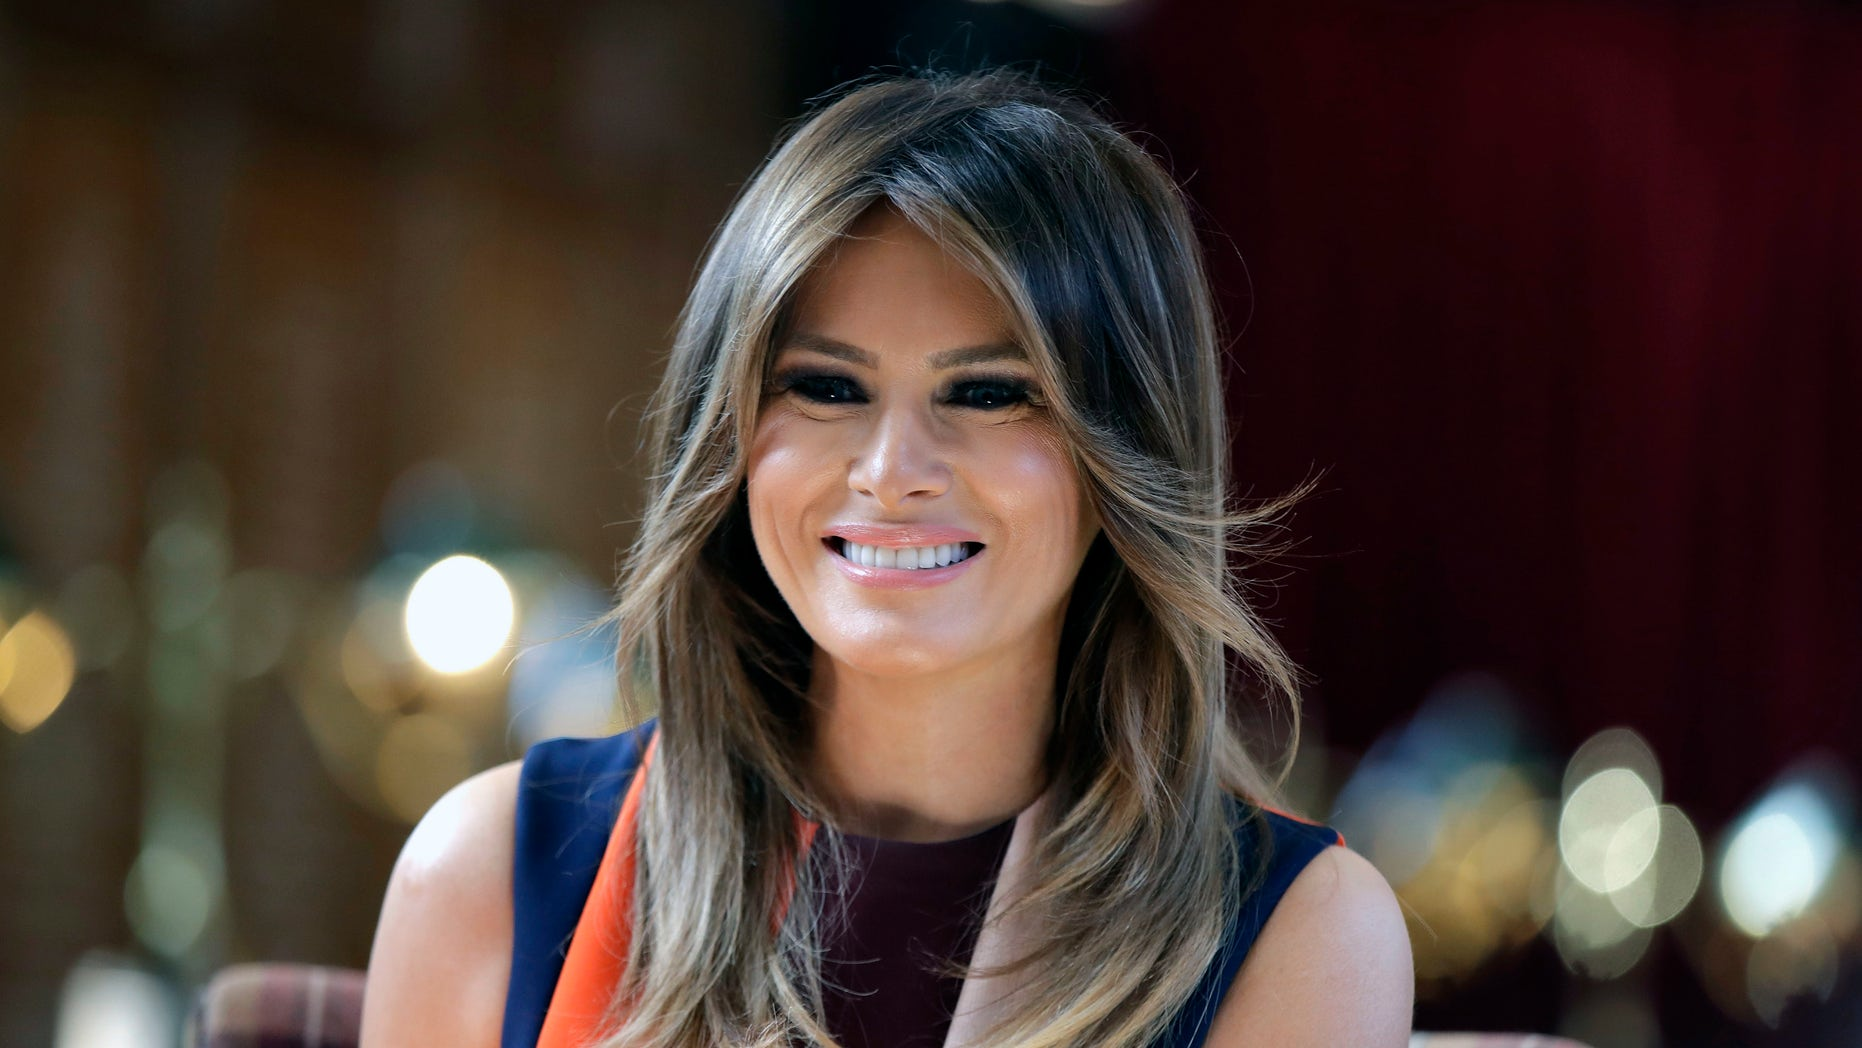 Melania Trump's plane forced to land after 'haze of smoke' spotted